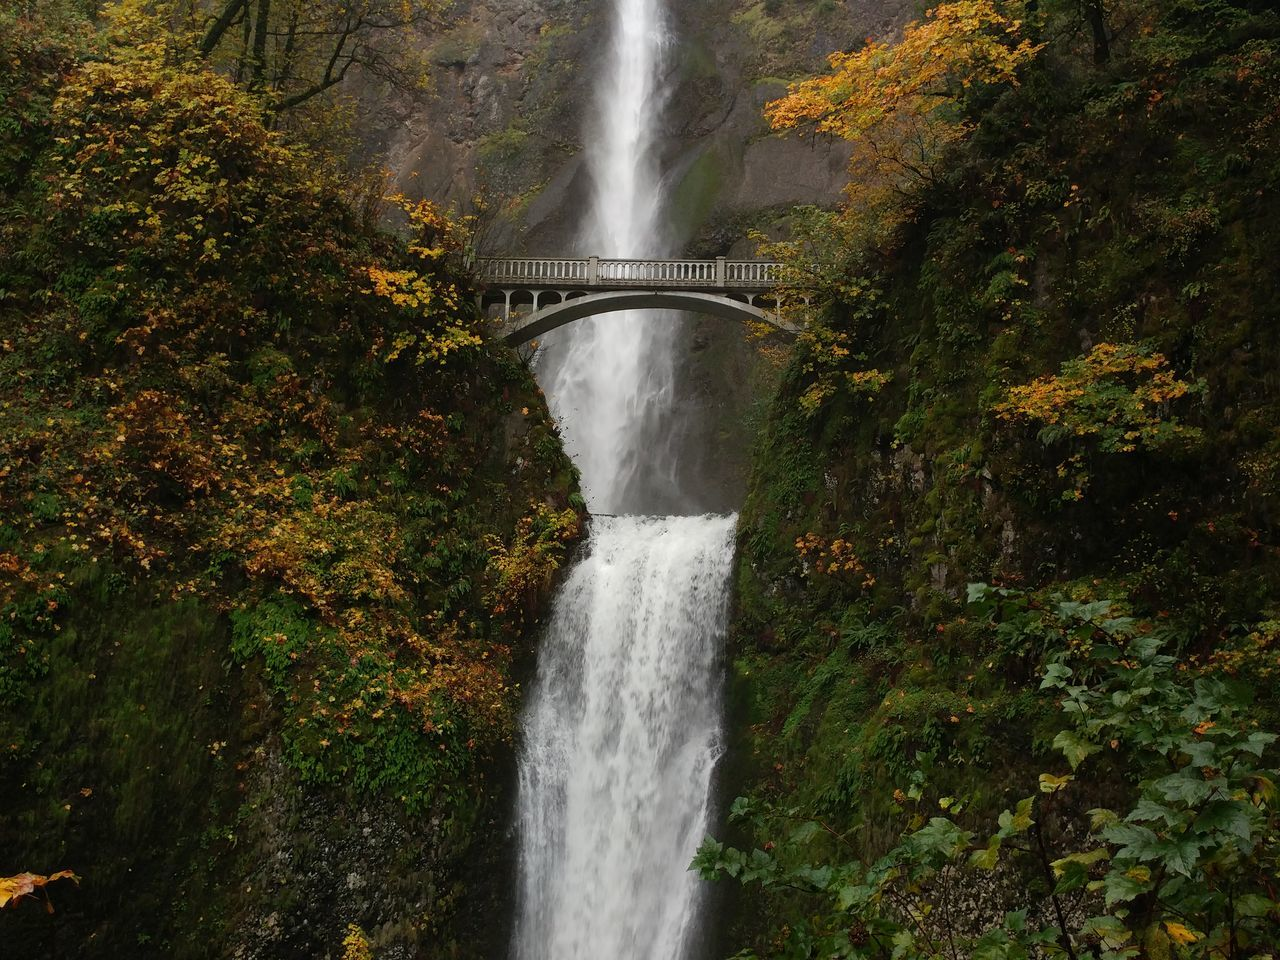 Nature Water Beauty In Nature Waterfall Outdoors Day Portland Portland, OR Multnomah Falls  Taking Photos